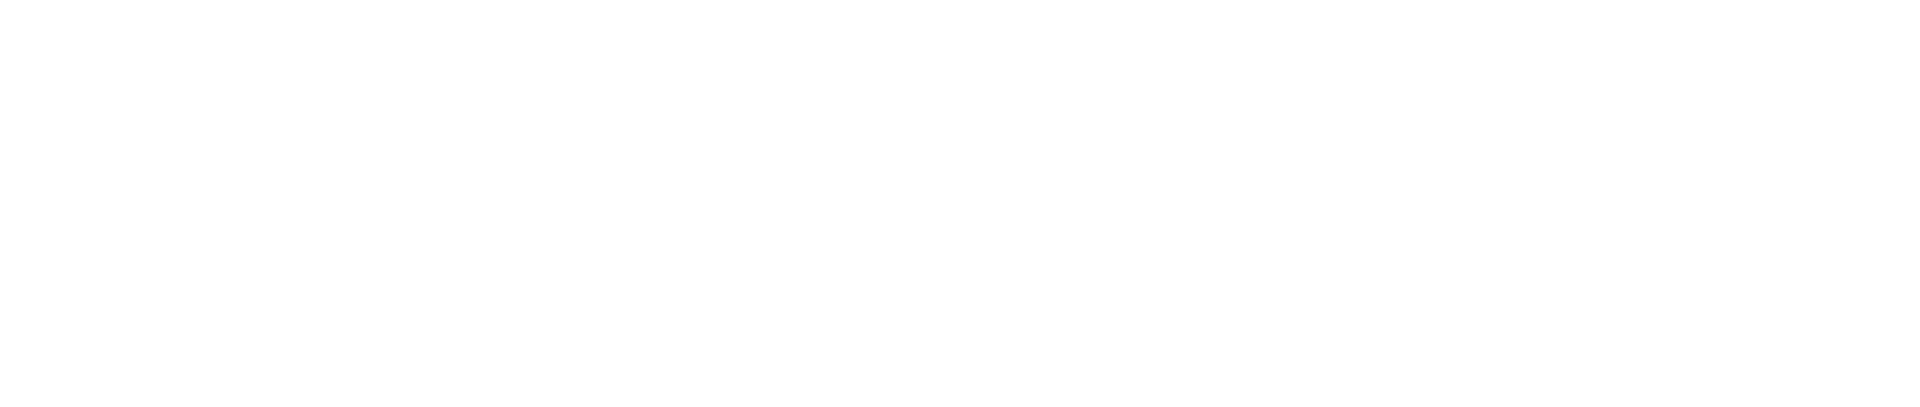 The Myers Automotive Group logo in white text, with a symbol that looks like a closed white envelope to the left.